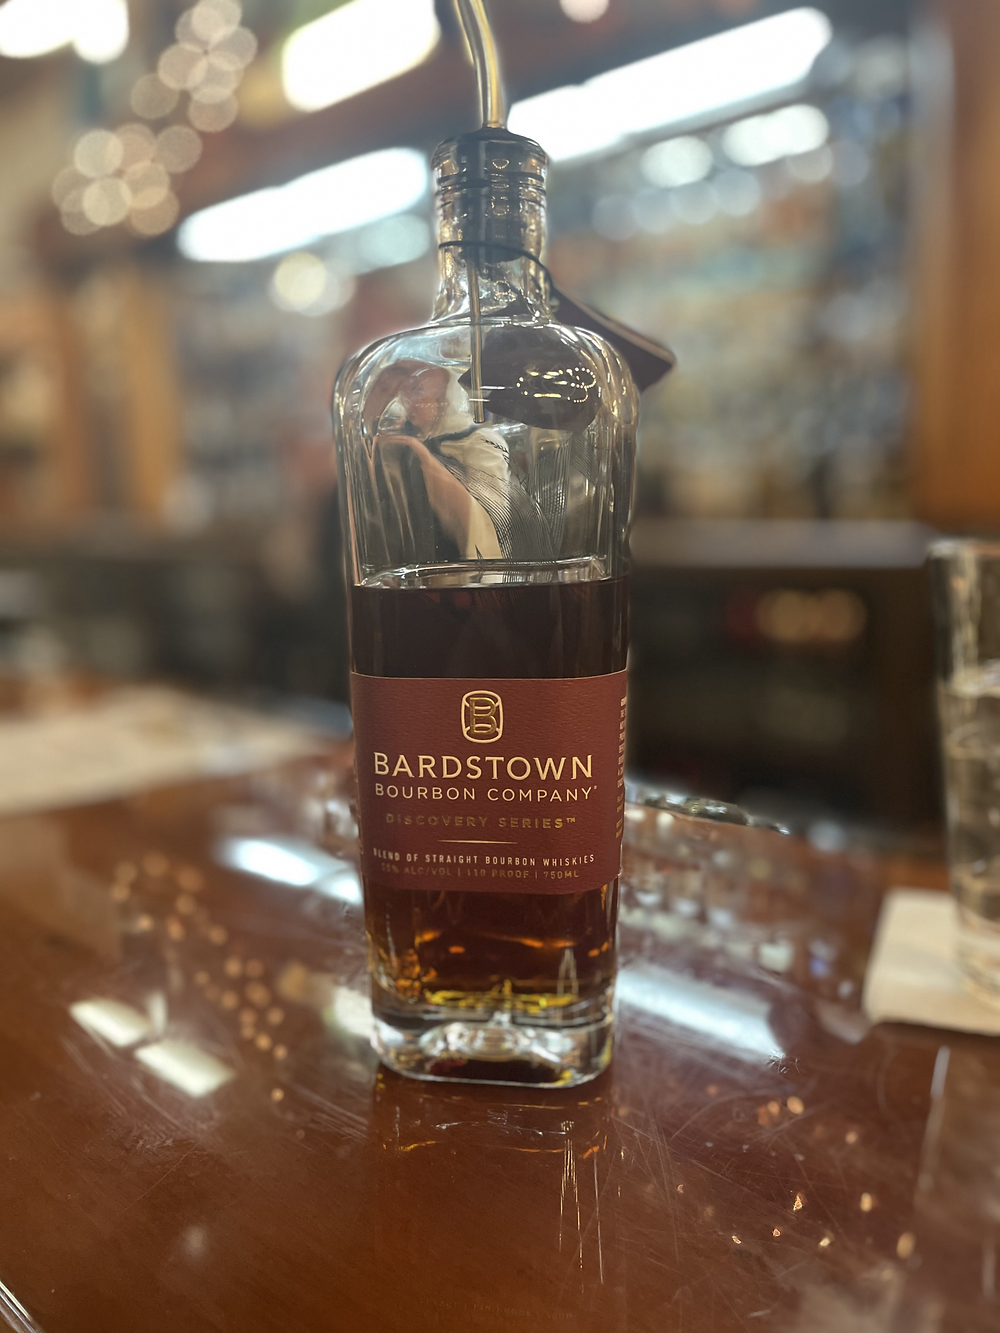 Discovery Series #3 Bardstown Bourbon Company